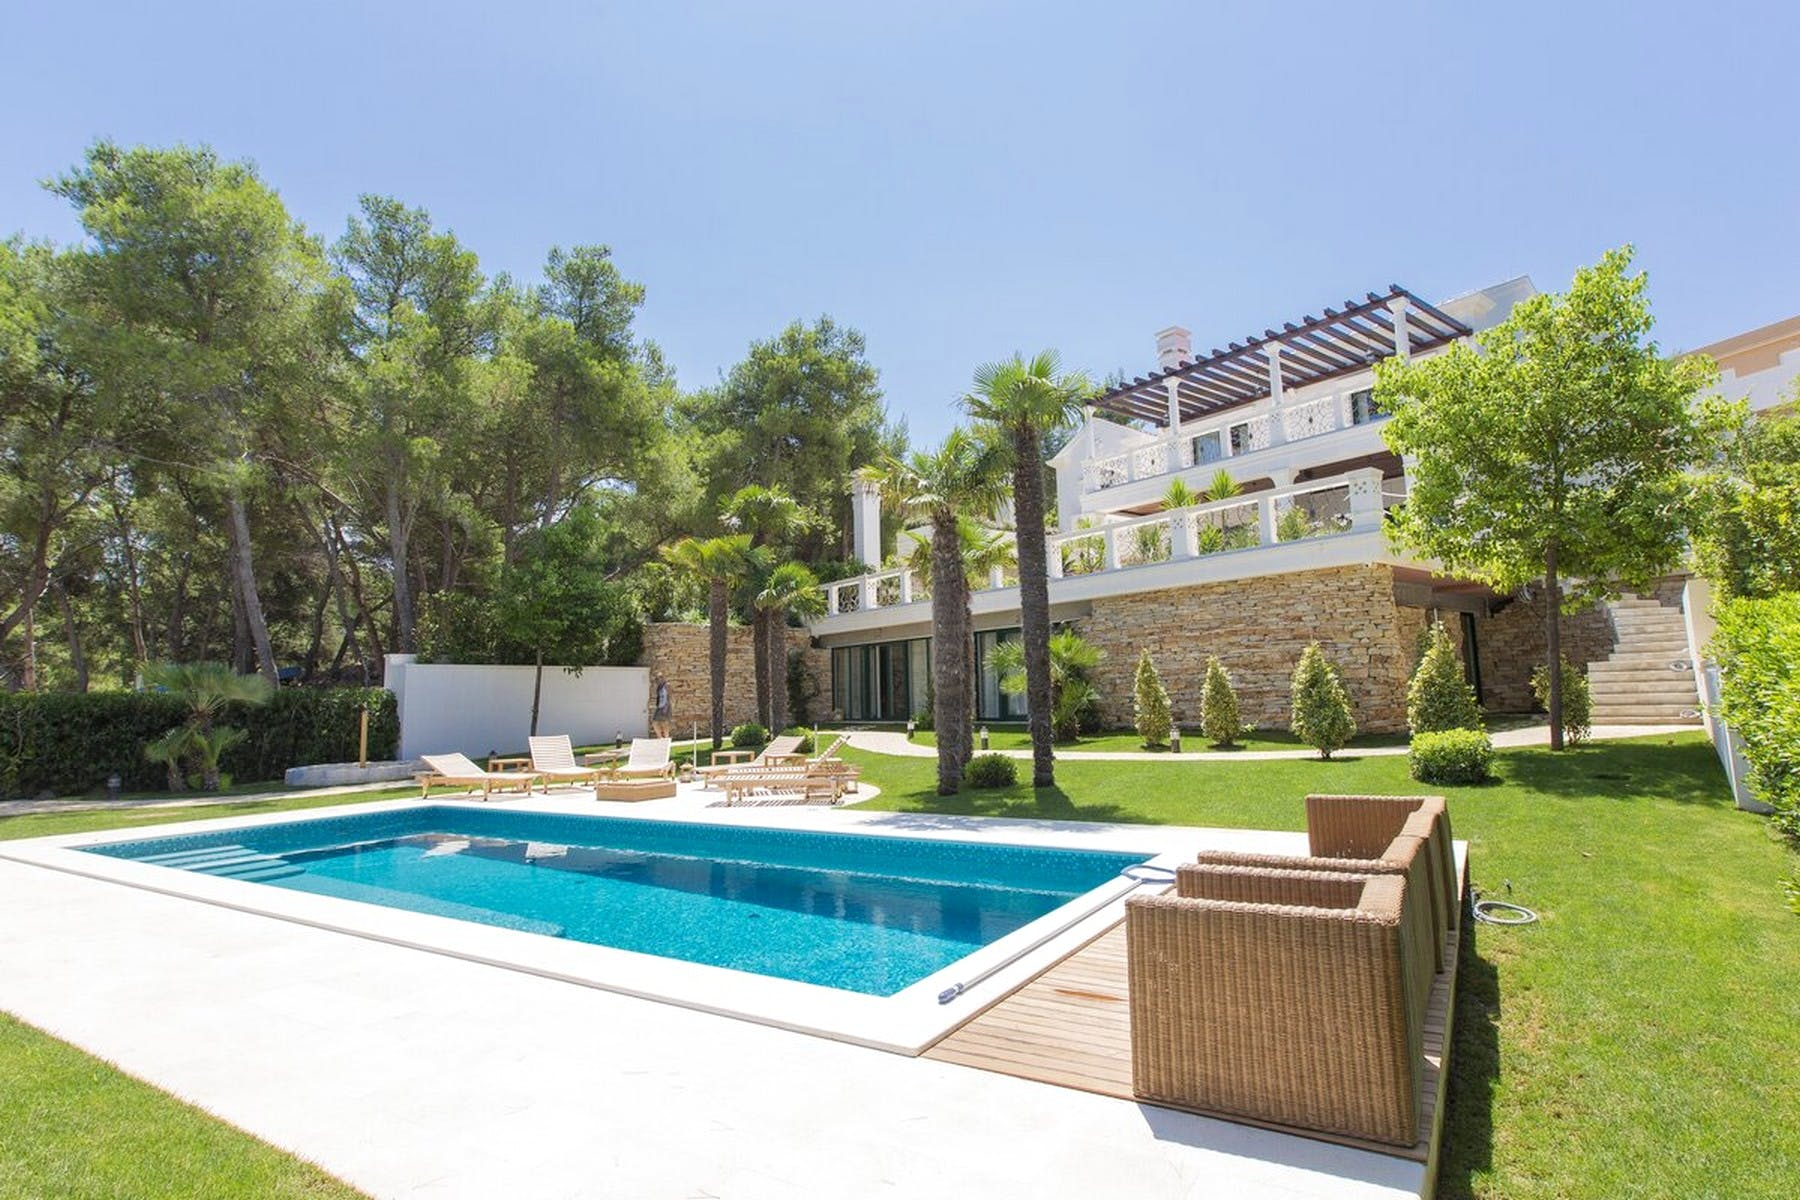 Exclusive villa with pool on an attractive seafront location